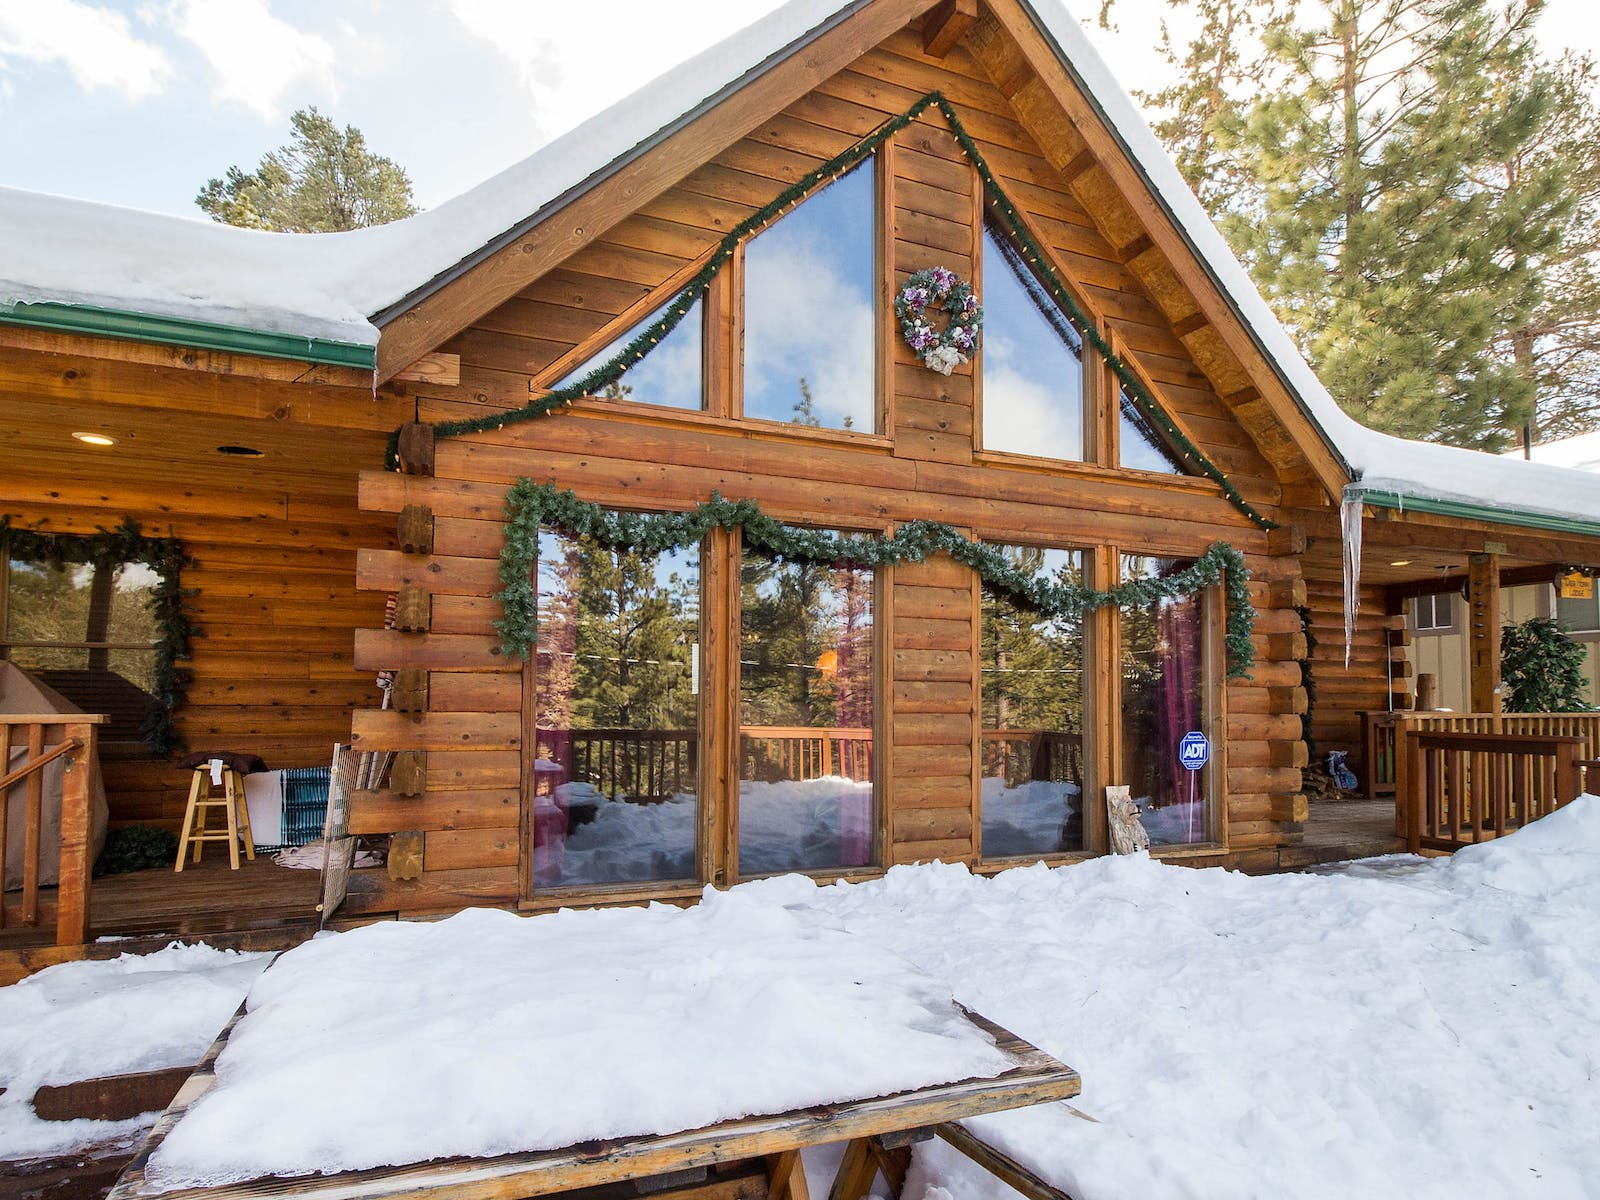 A cabin in Big Bear Lake with christmas decorations set up